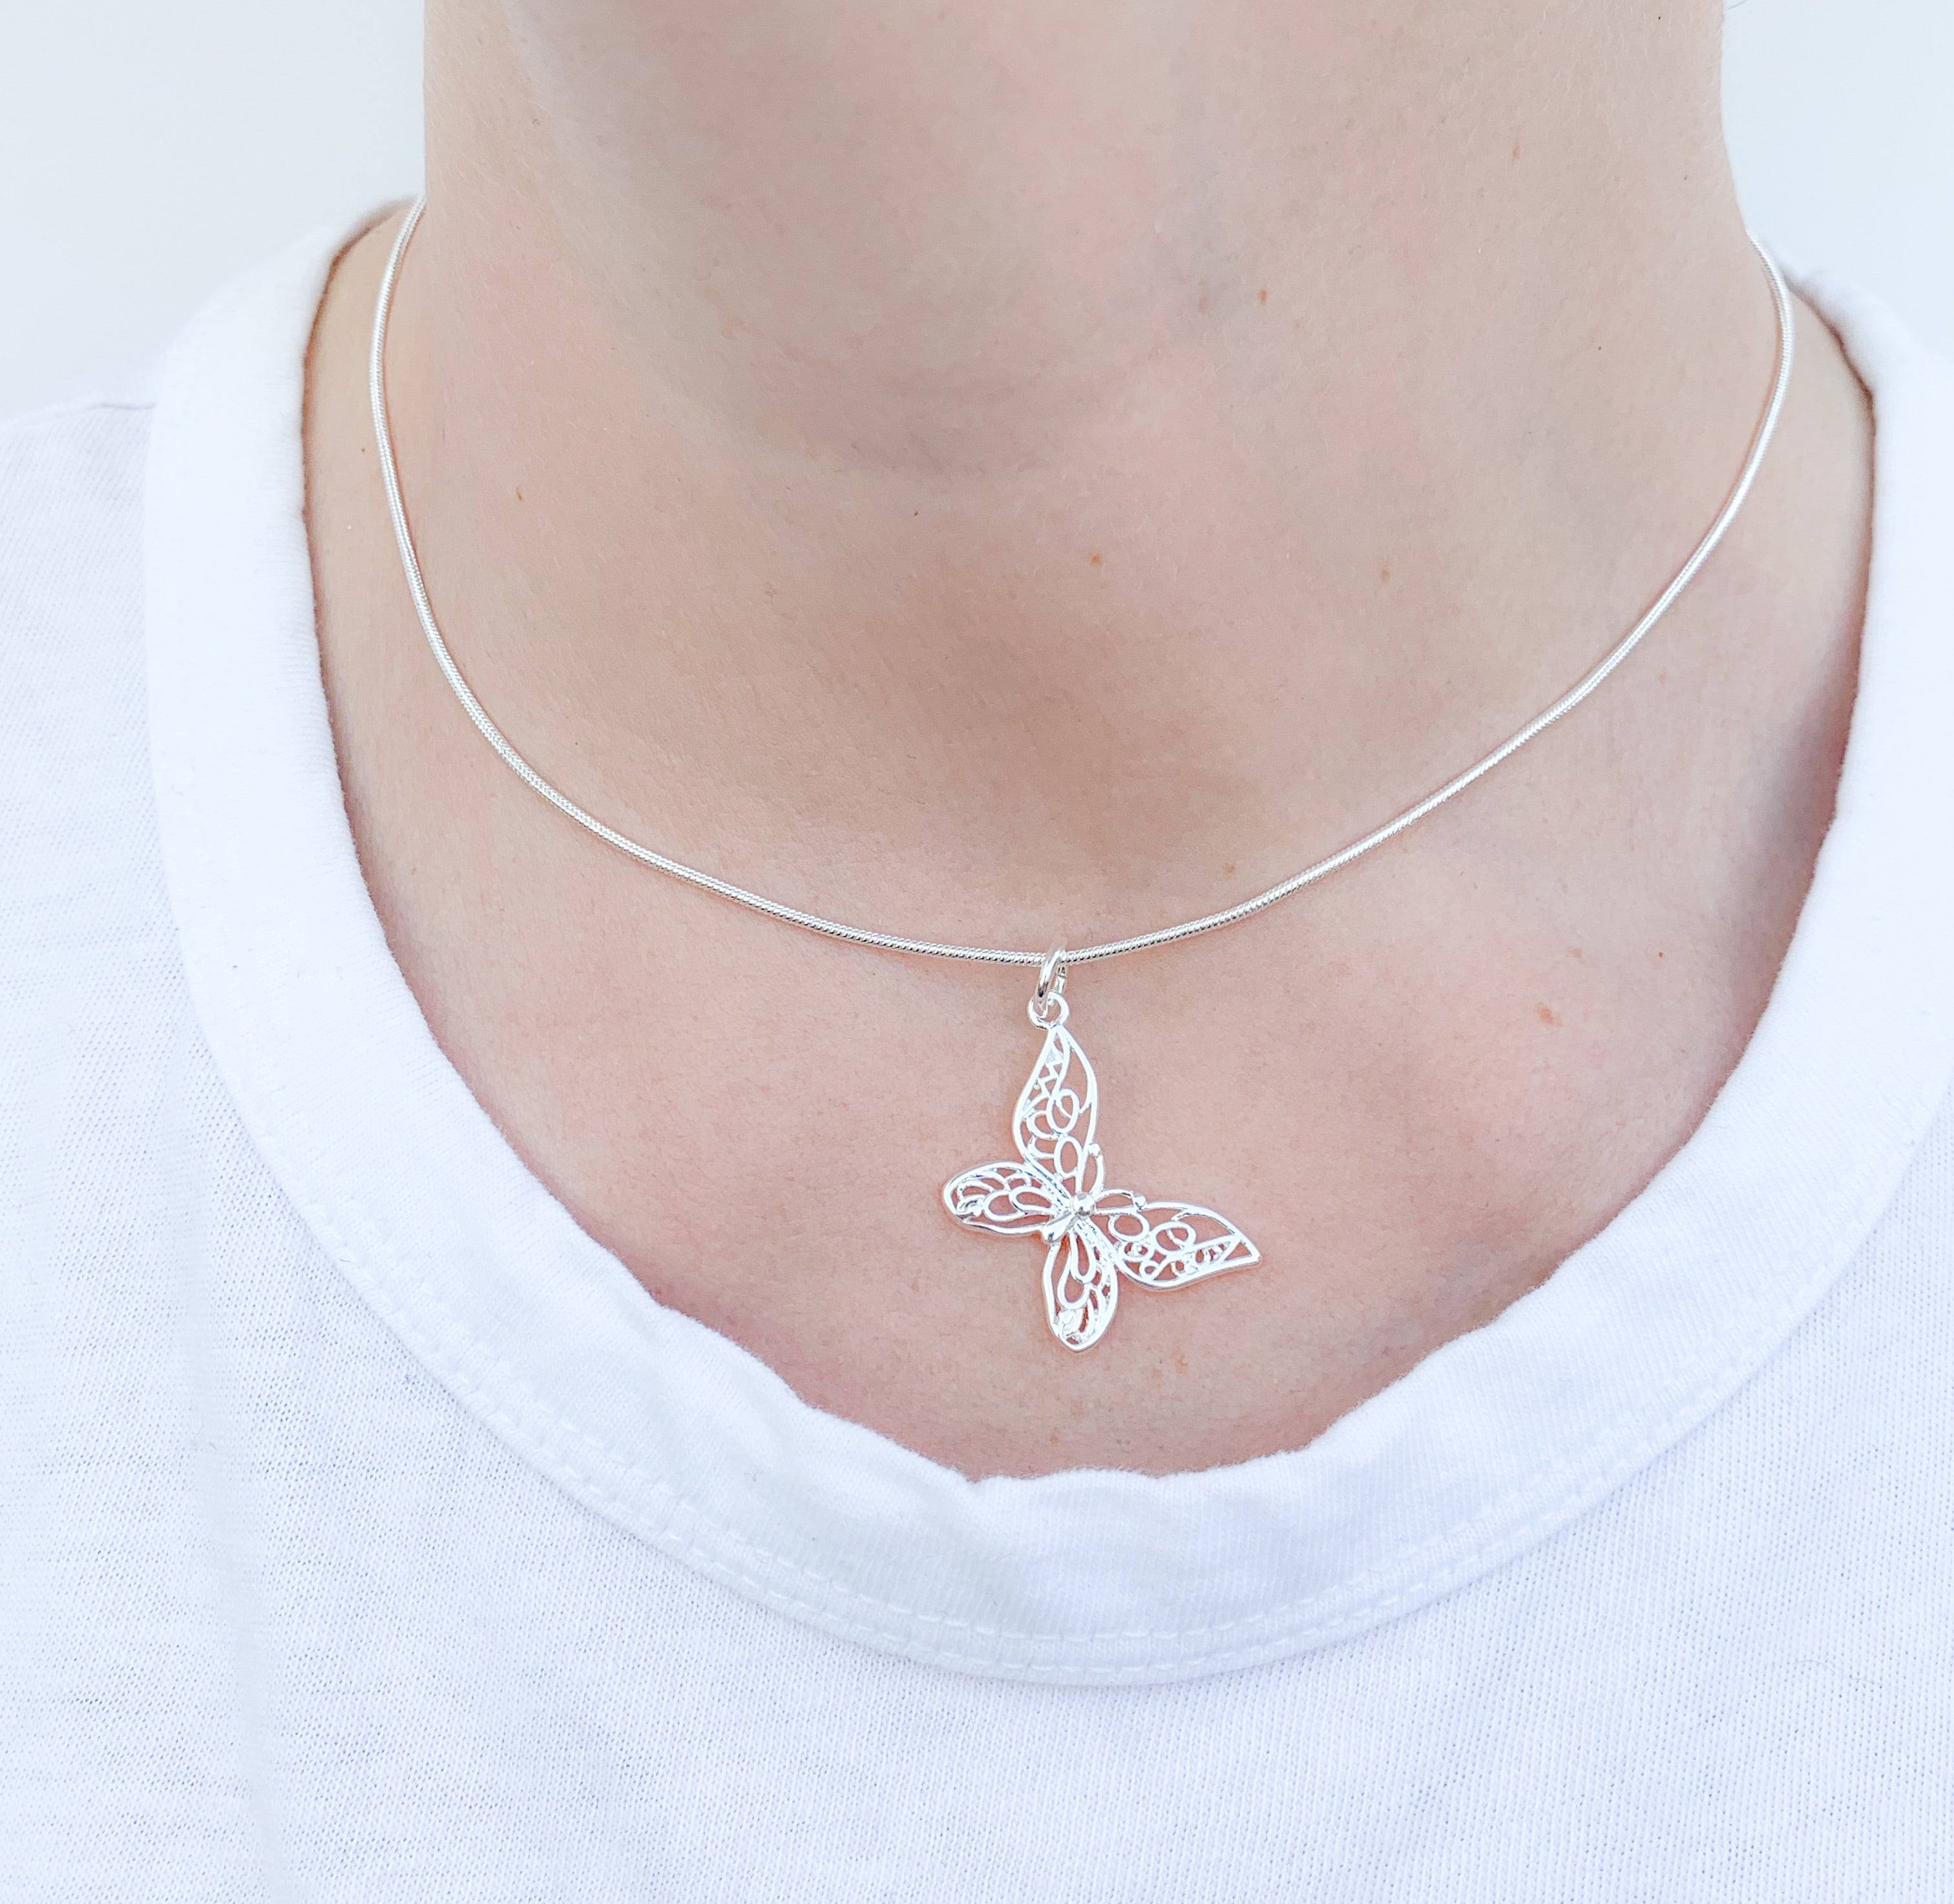 Annabella butterfly necklace